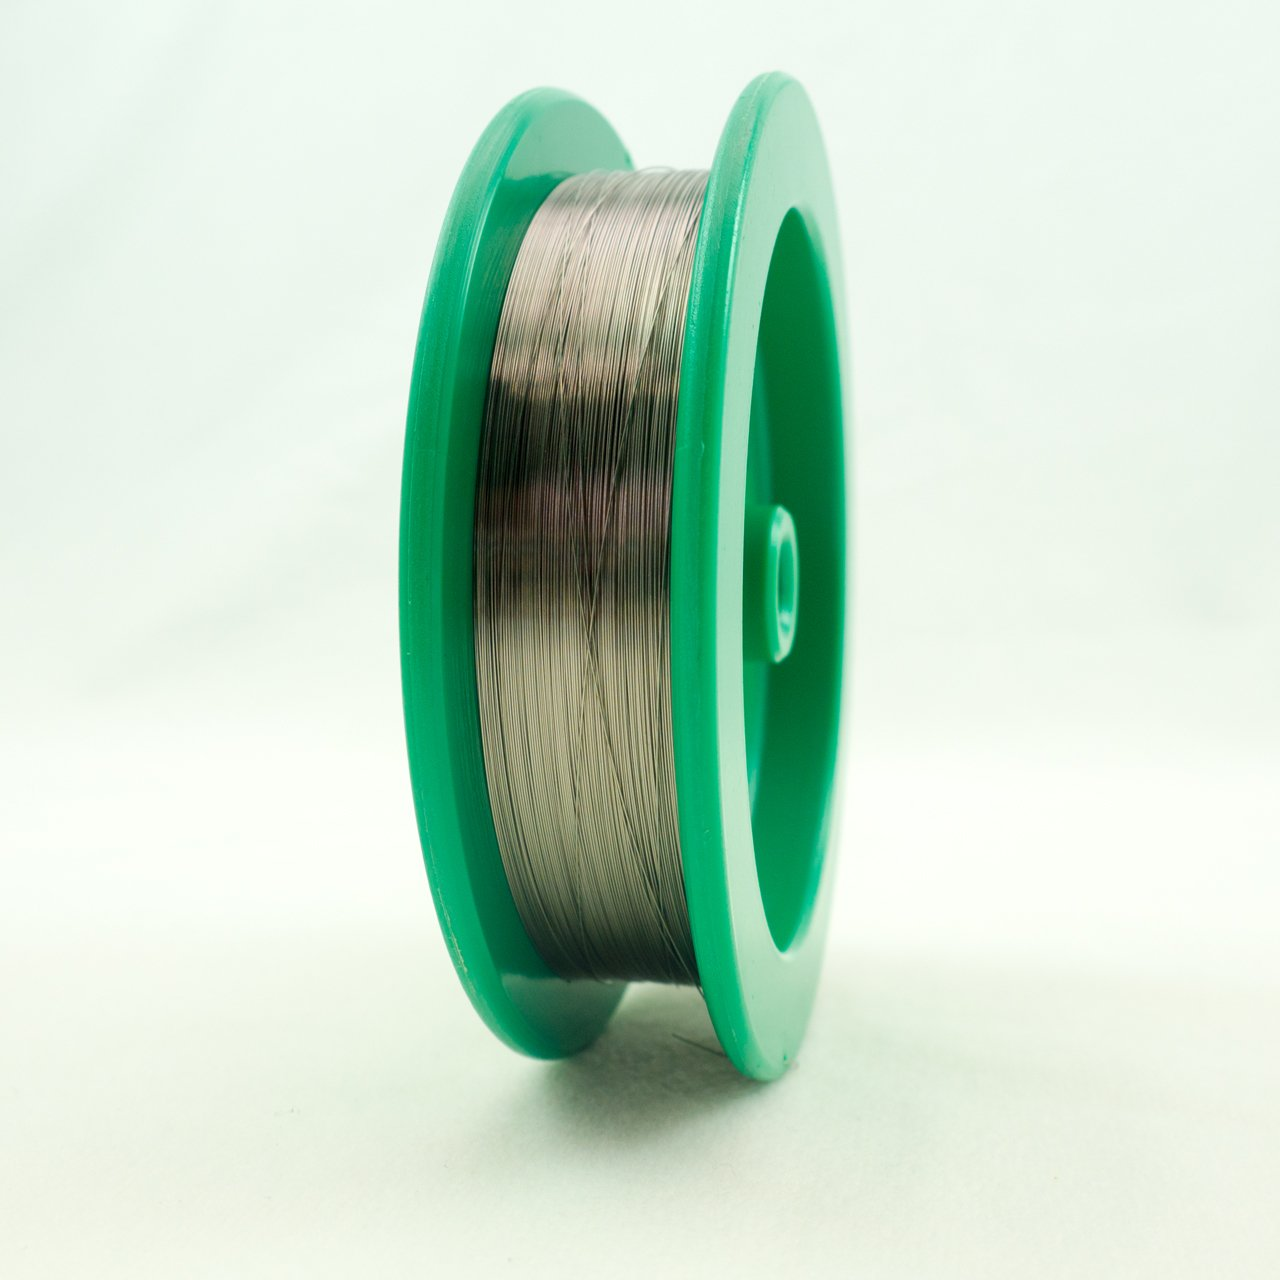 0.0100'' (0.254 mm) Diameter 99.95% Tungsten Fine Wire, 100 meter/spool, cleaned and straightened by Midwest Tungsten Service (Image #1)